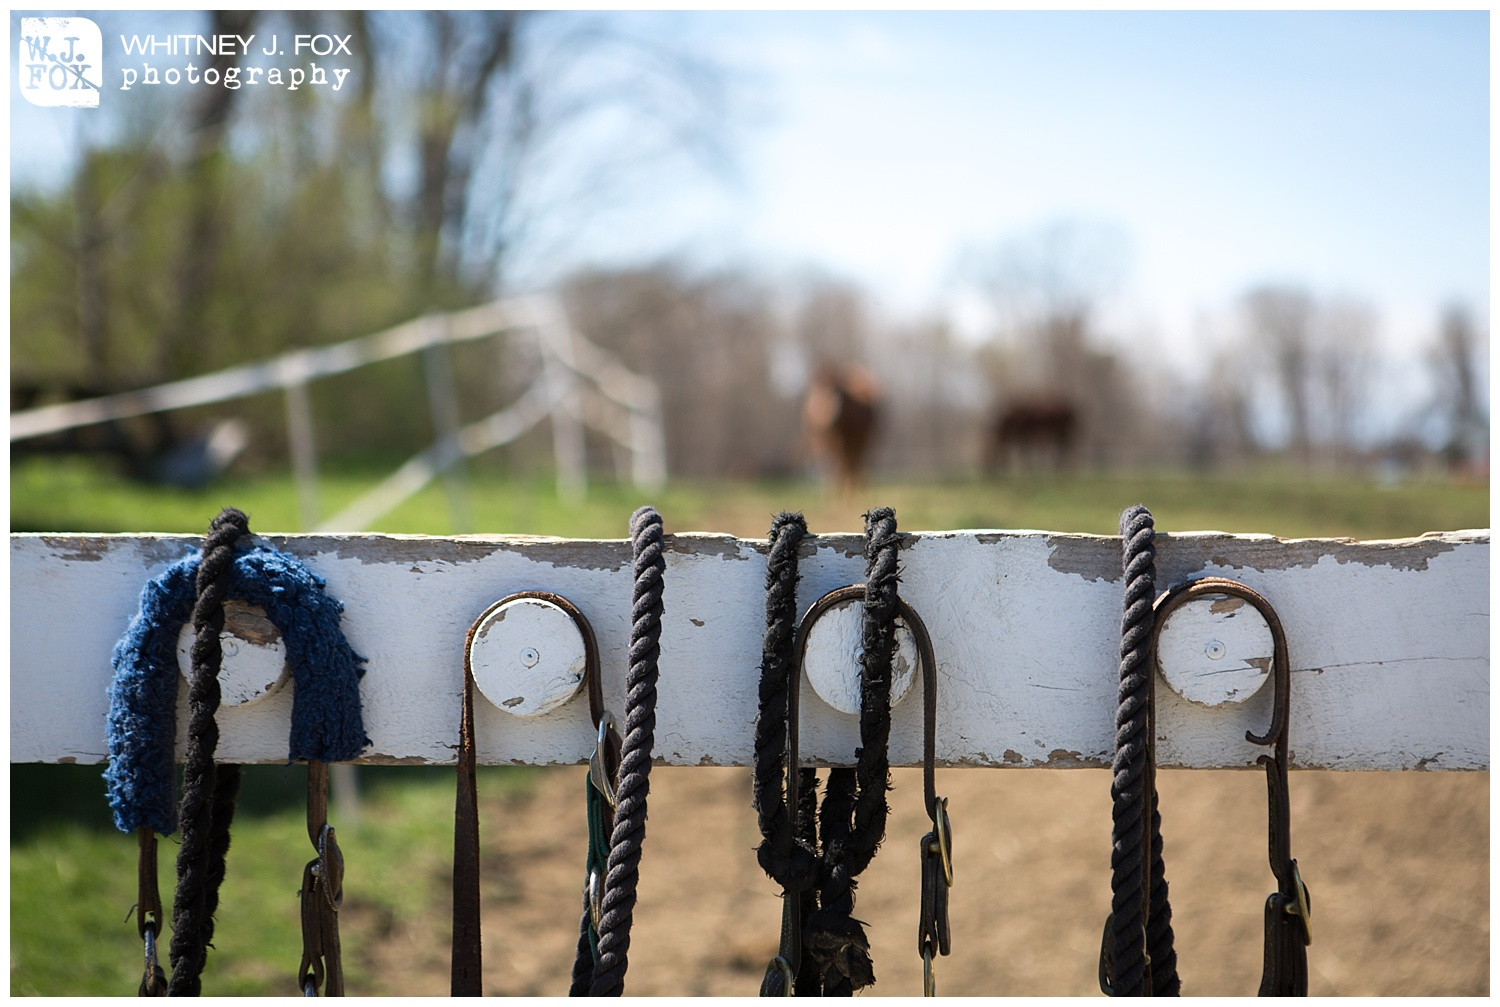 homestead_rest_and_be_thankful_farm_lyman_maine_rustic_wedding_venue_whitney_j_fox_weddings_1345.jpg